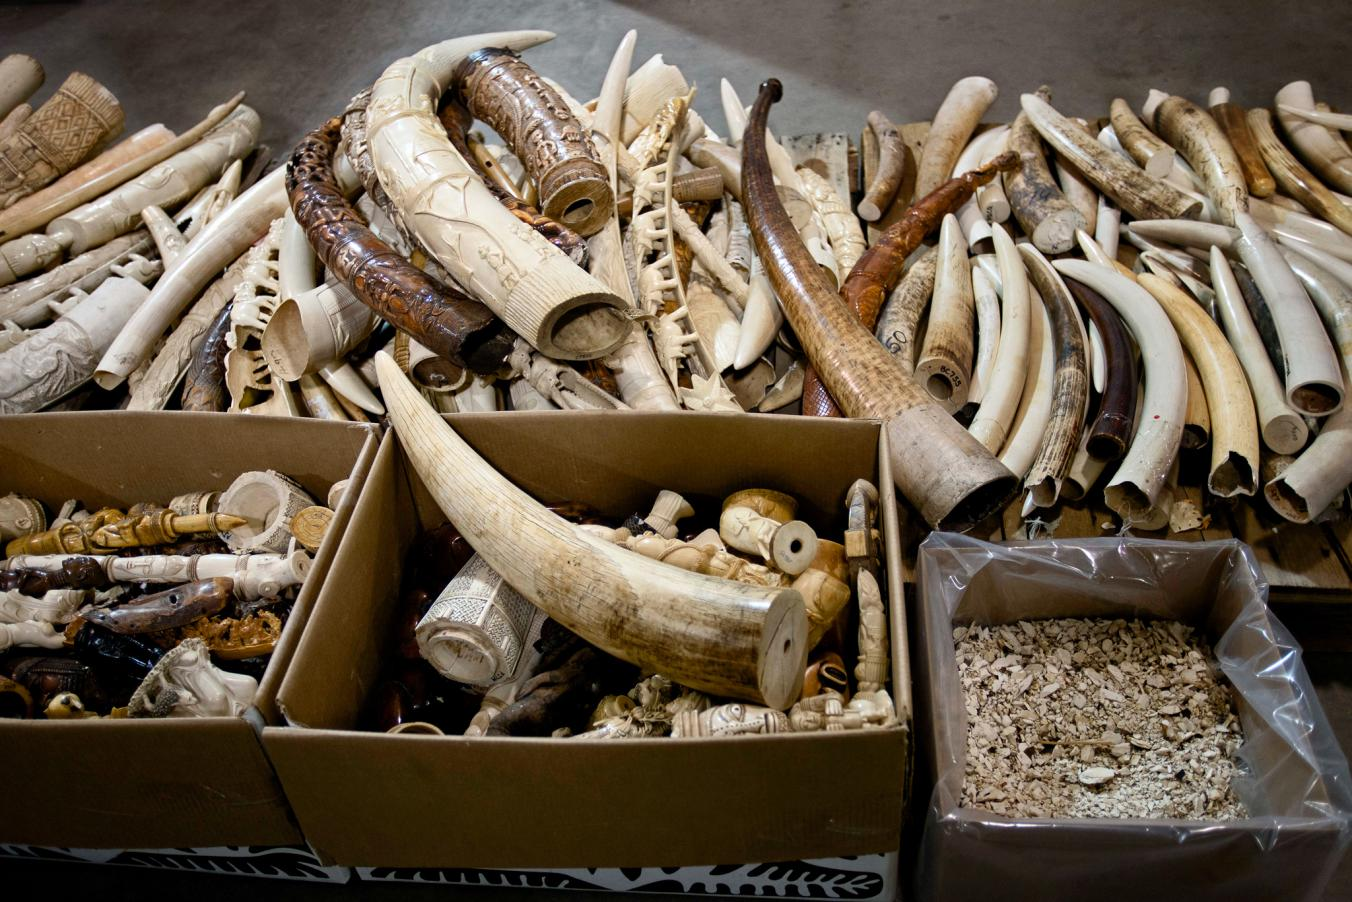 Confiscated elephant tusks and boxes of figurines carved from ivory sit in the main hall of the National Wildlife Property Repository, in Colorado.  PHOTOGRAPH BY KATE BROOKS, REDUX